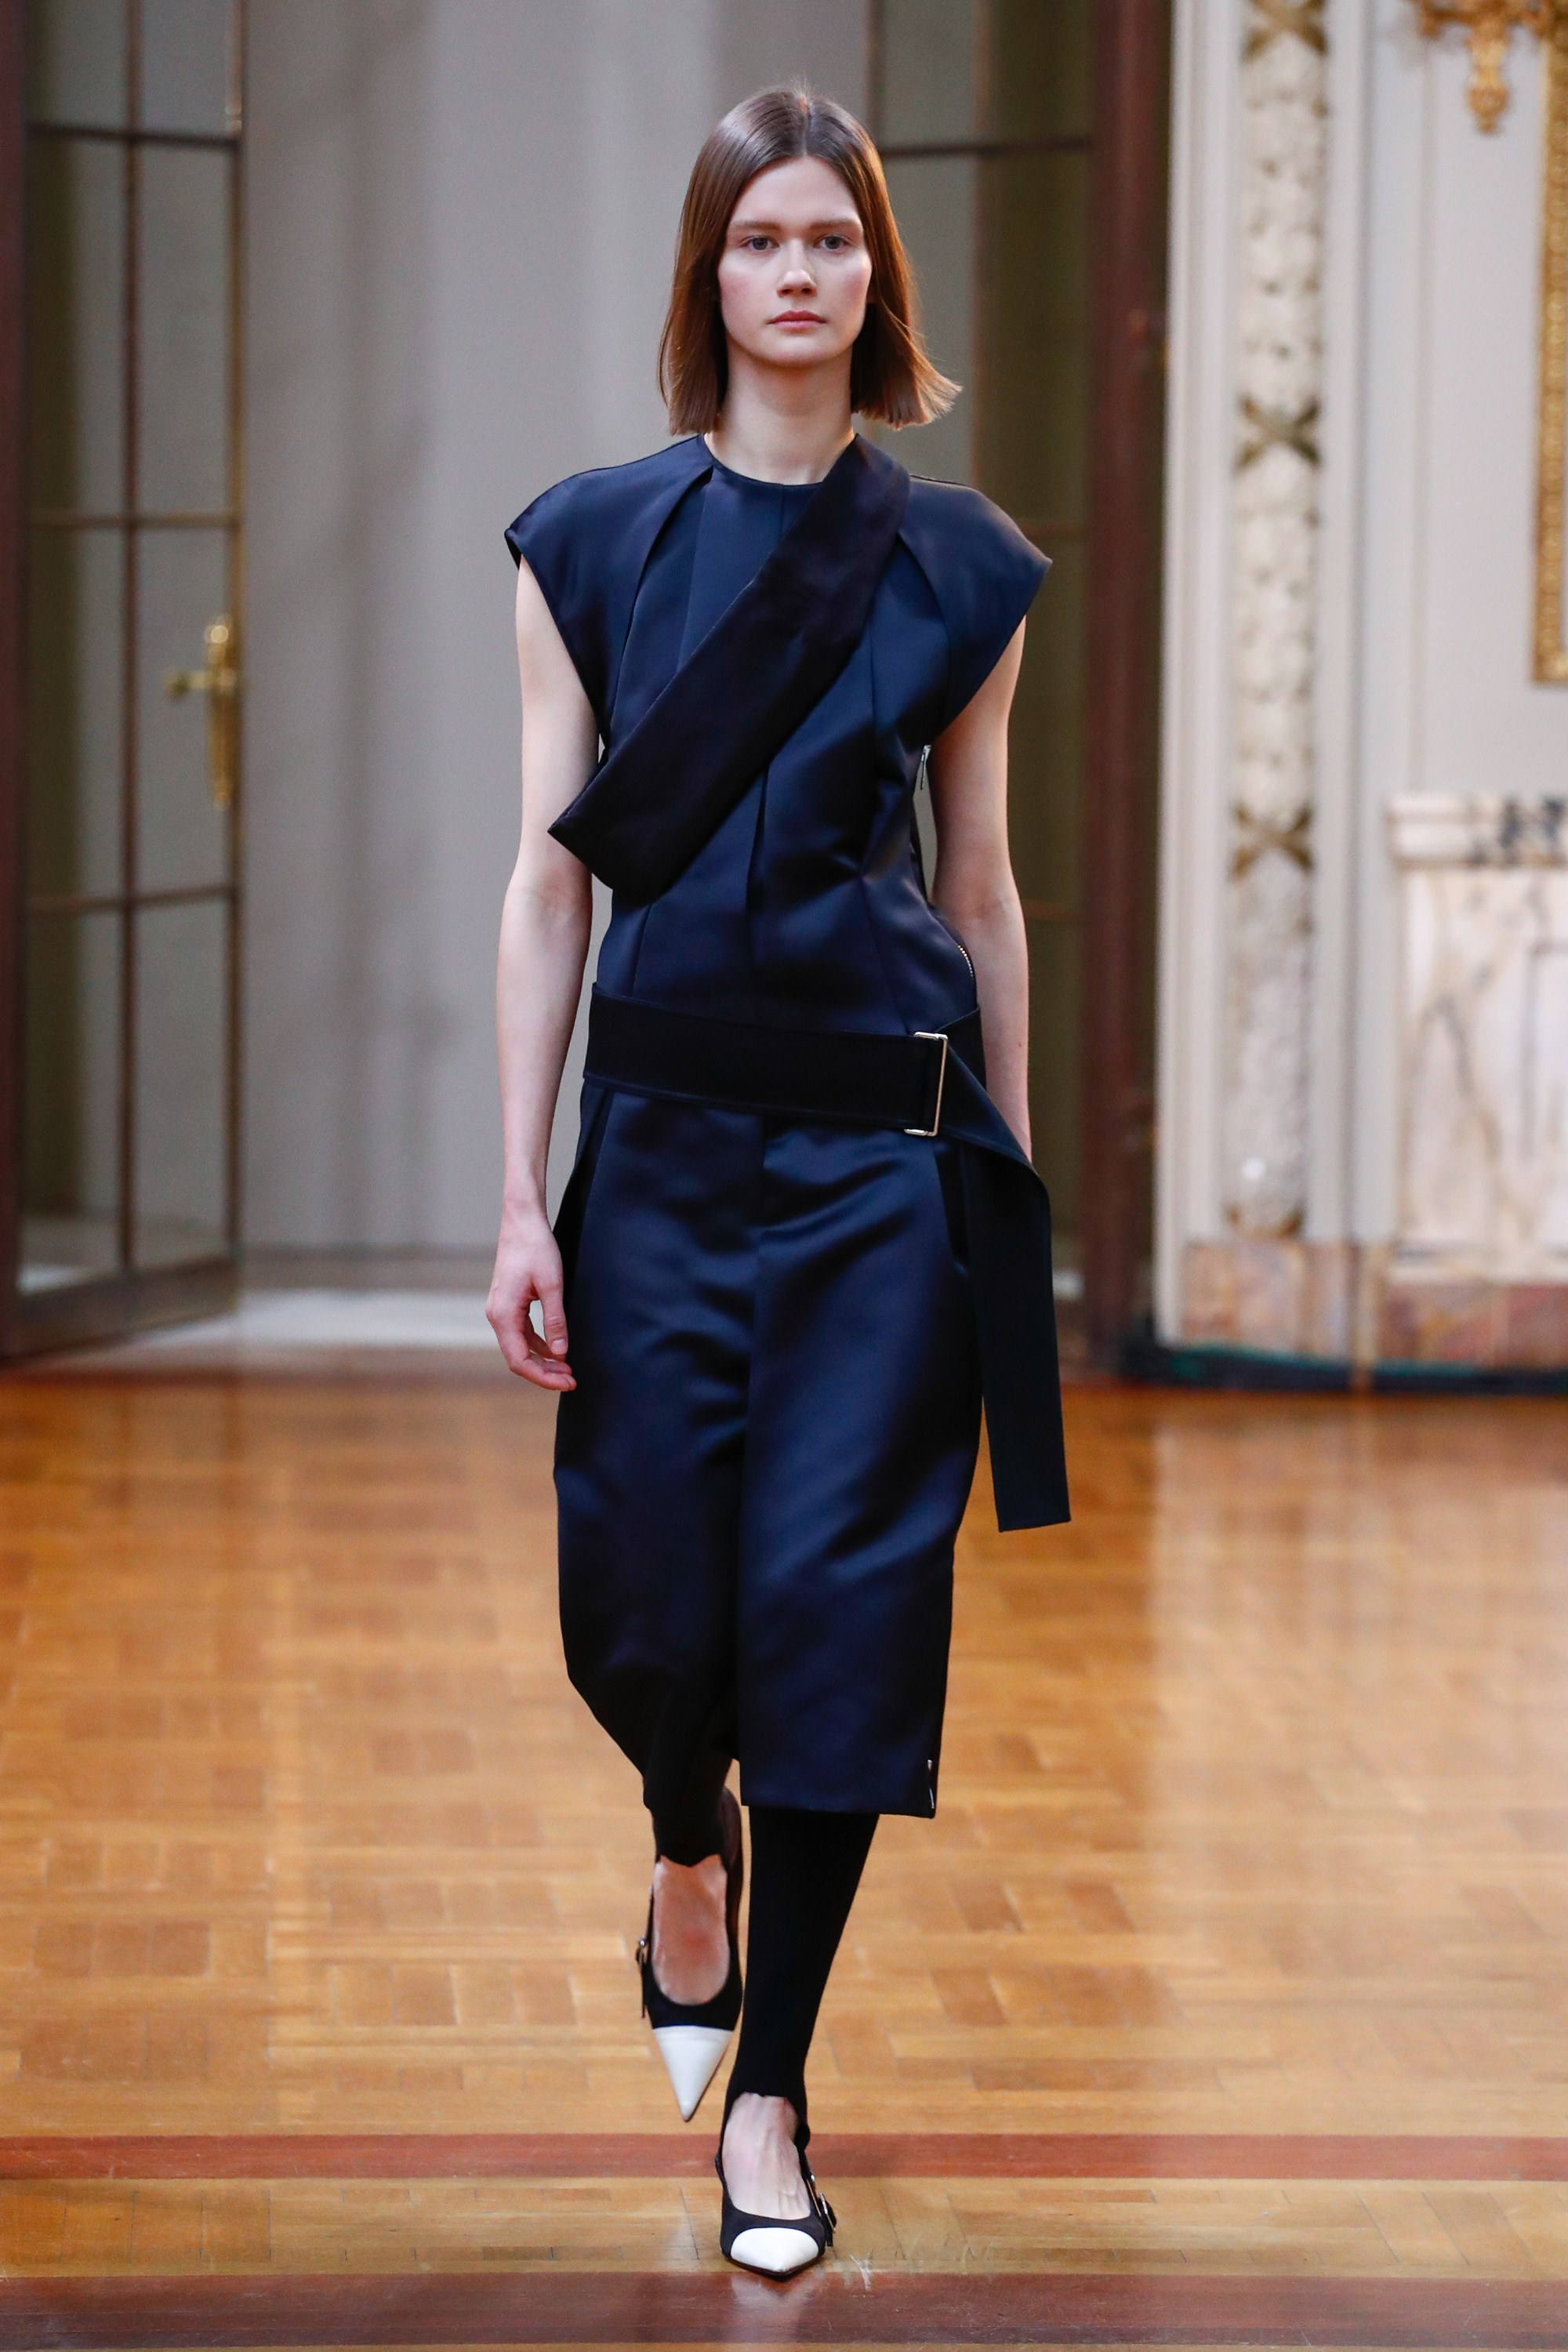 Victoria Beckham show, Runway, Fall Winter 2018, New York Fashion Week, USA <P> Pictured: Model  <B>Ref: SPL1657775  110218  </B><BR/> Picture by: NPictures / Splash News<BR/> </P><P> <B>Splash News and Pictures</B><BR/> Los Angeles:310-821-2666<BR/> New York:212-619-2666<BR/> London:870-934-2666<BR/> <span id=